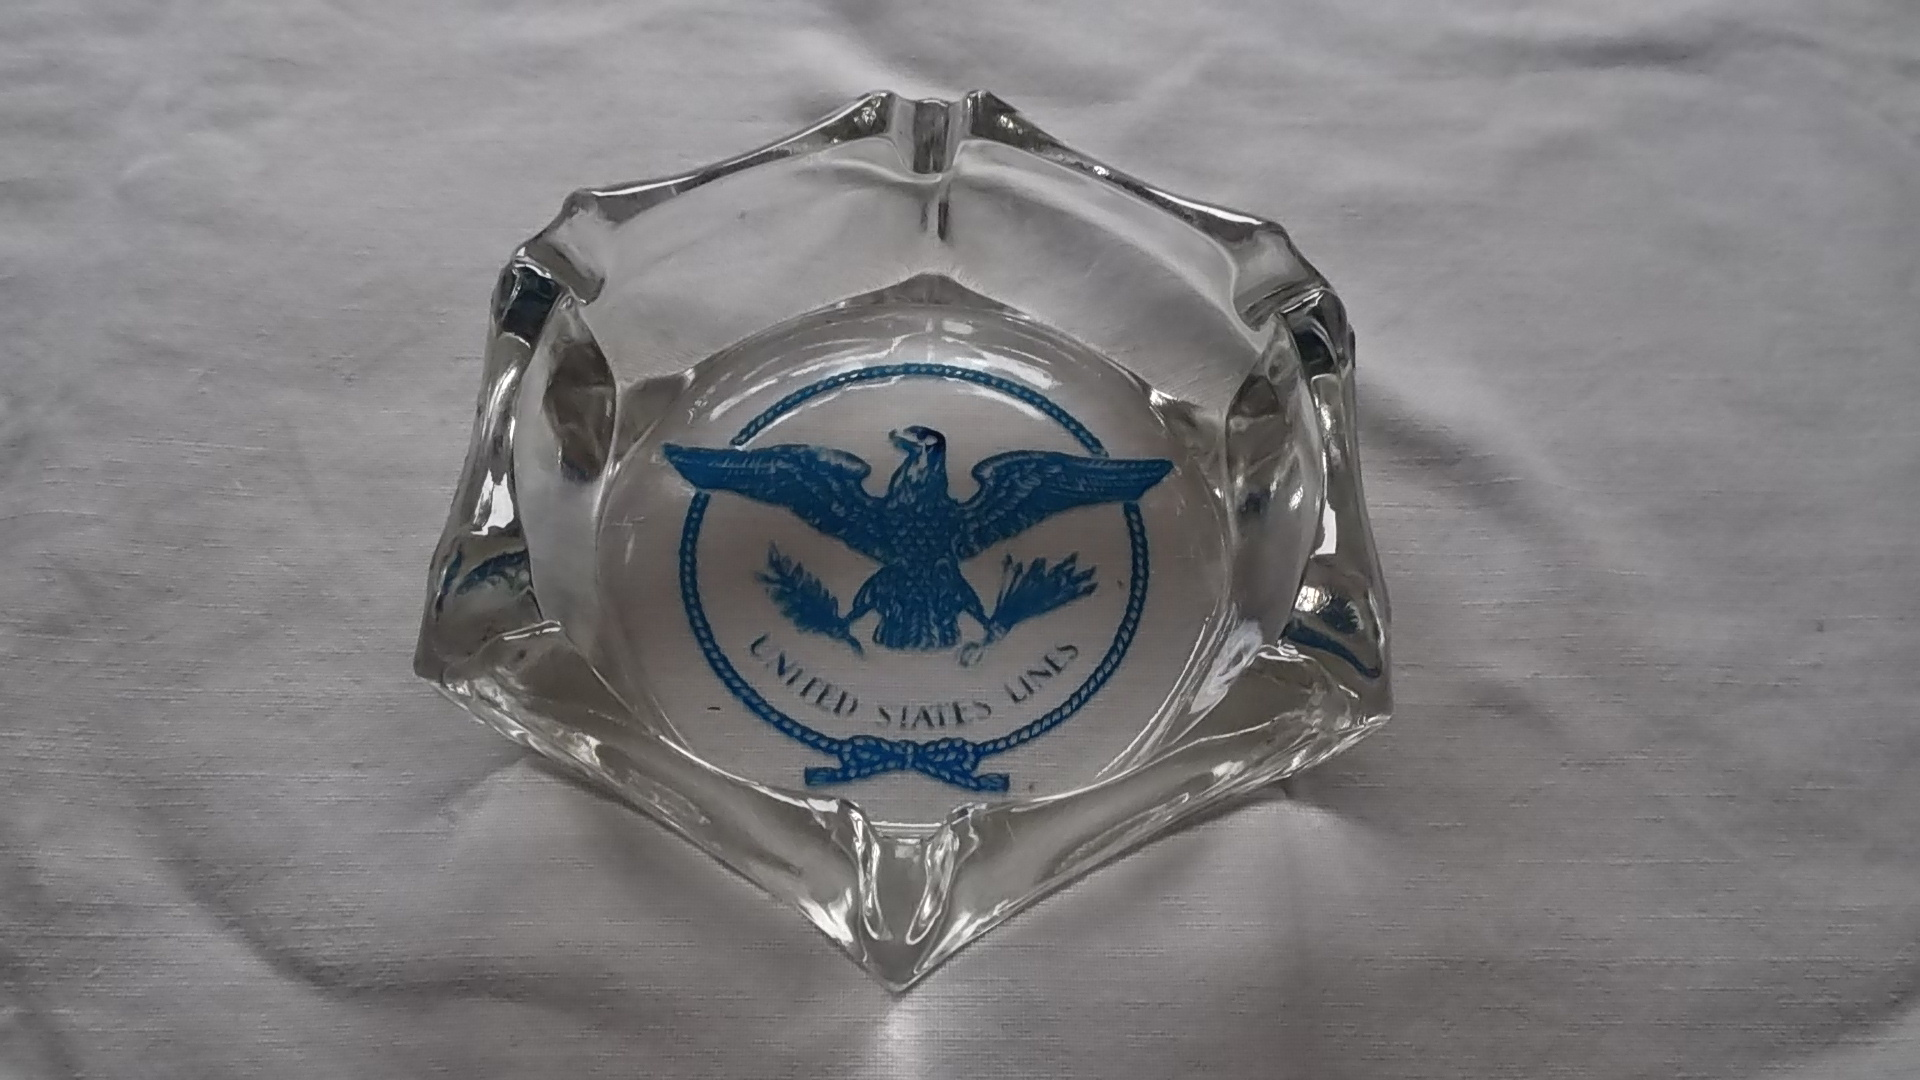 ORIGINAL CABIN ASHTRAY FROM THE UNITED STATES LINES